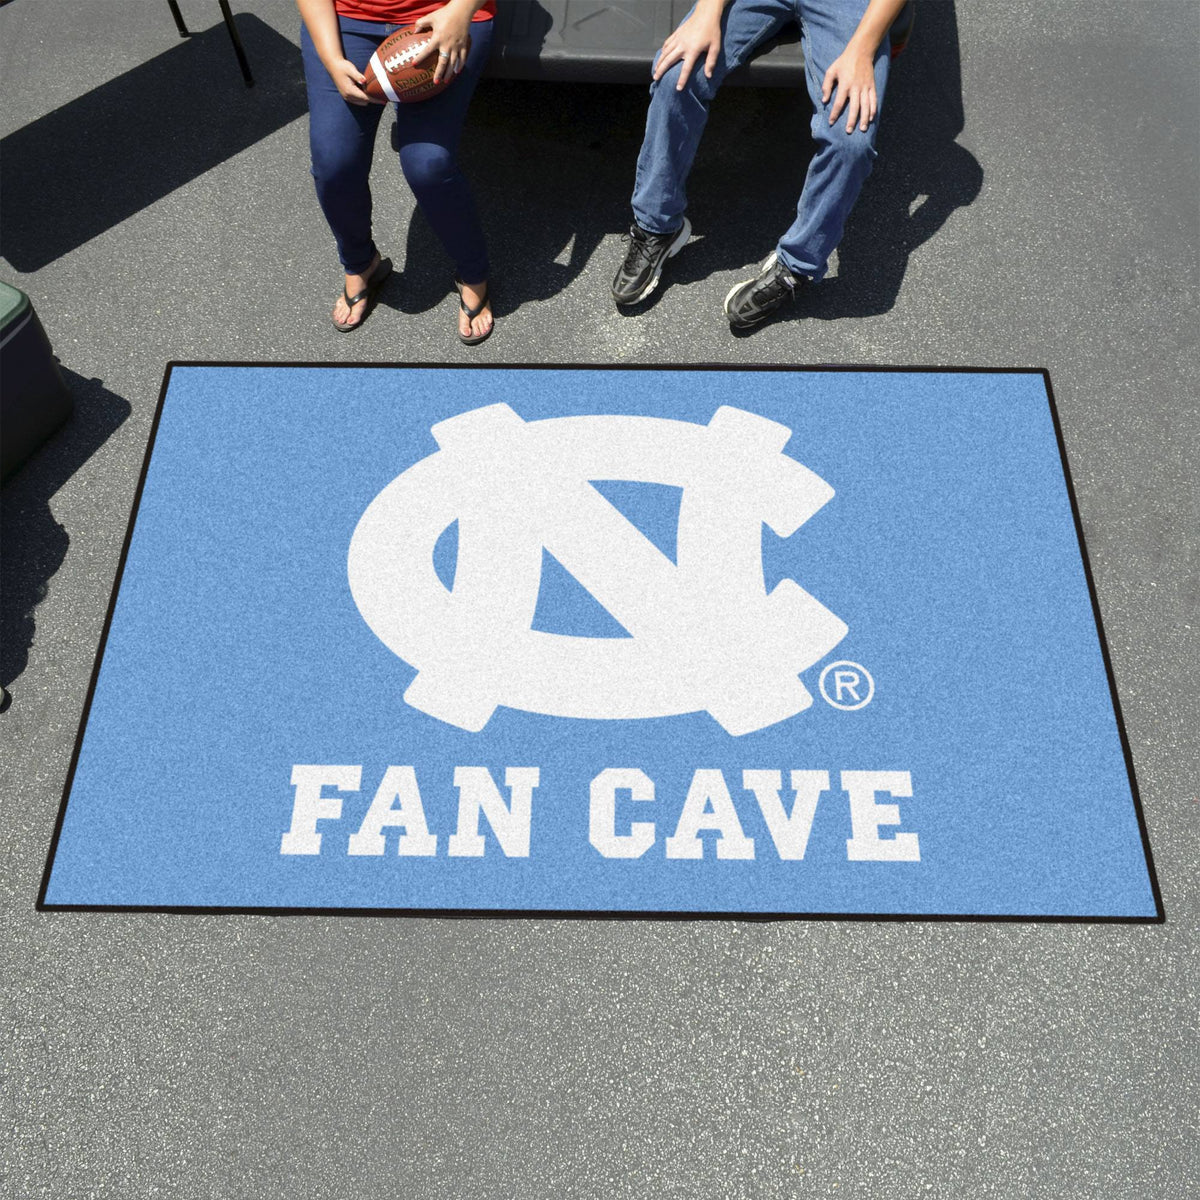 Collegiate - Football Field Runner Collegiate Mats, Rectangular Mats, Football Field Runner, Collegiate, Home Fan Mats North Carolina